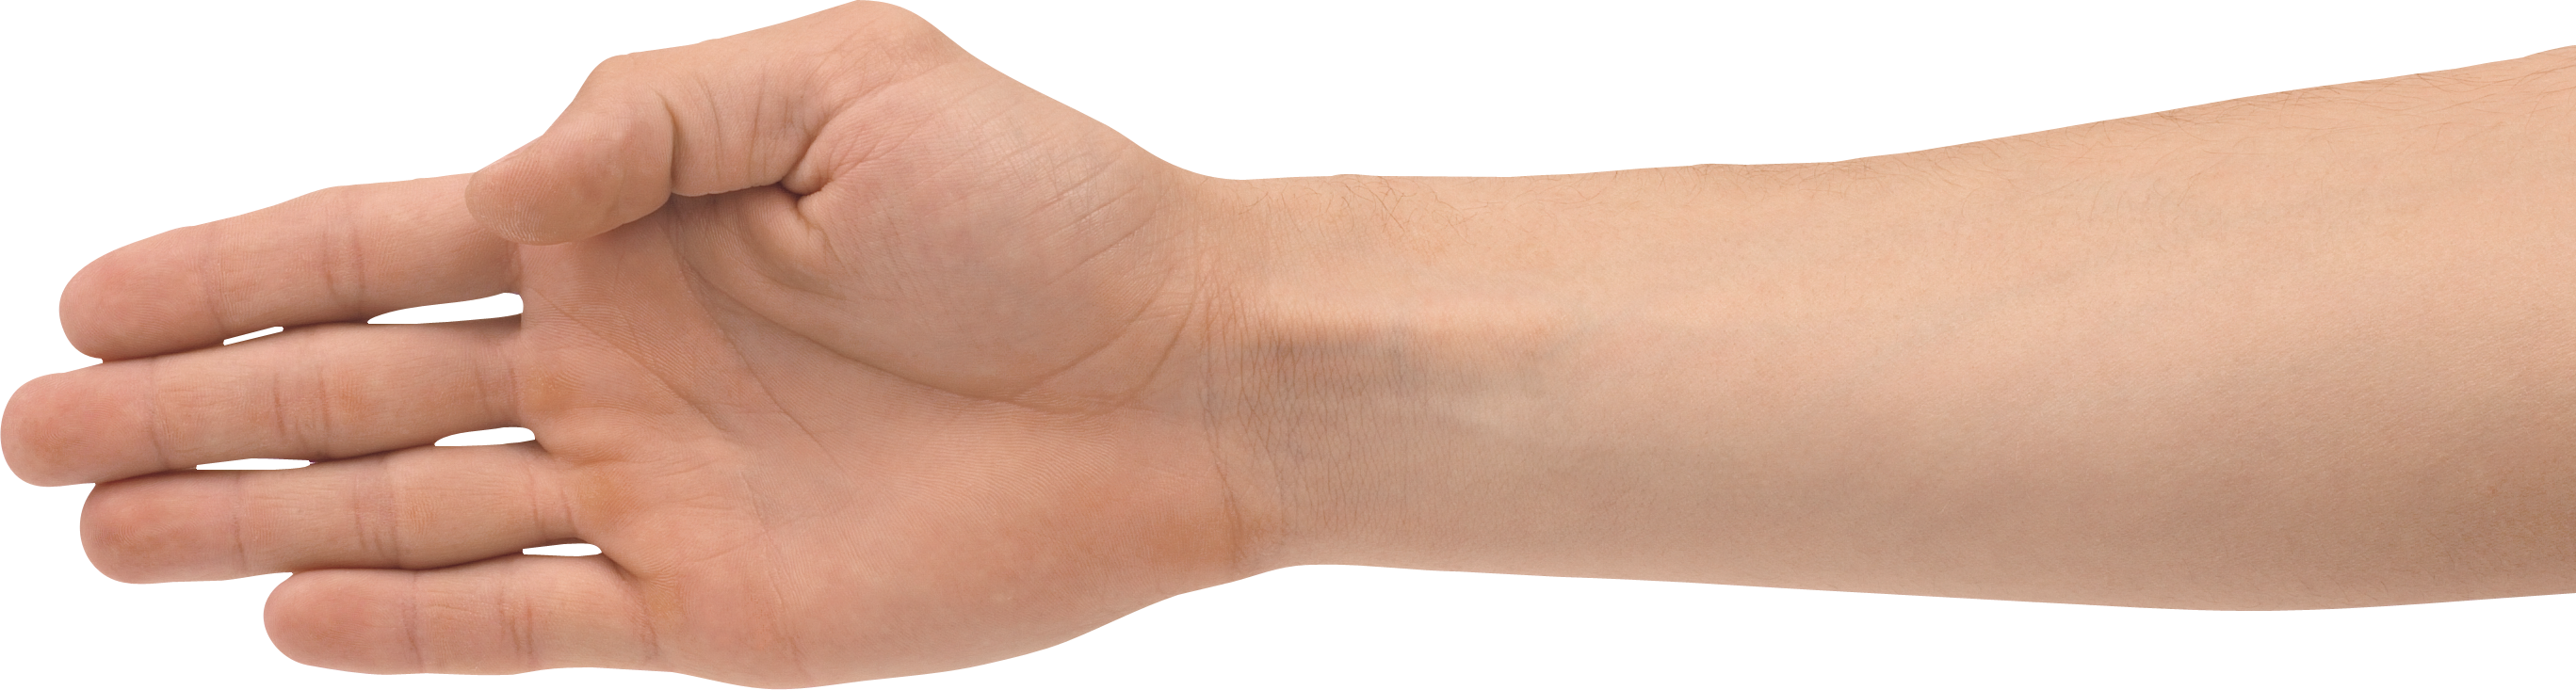 Hands png image purepng. Hand clipart forearm